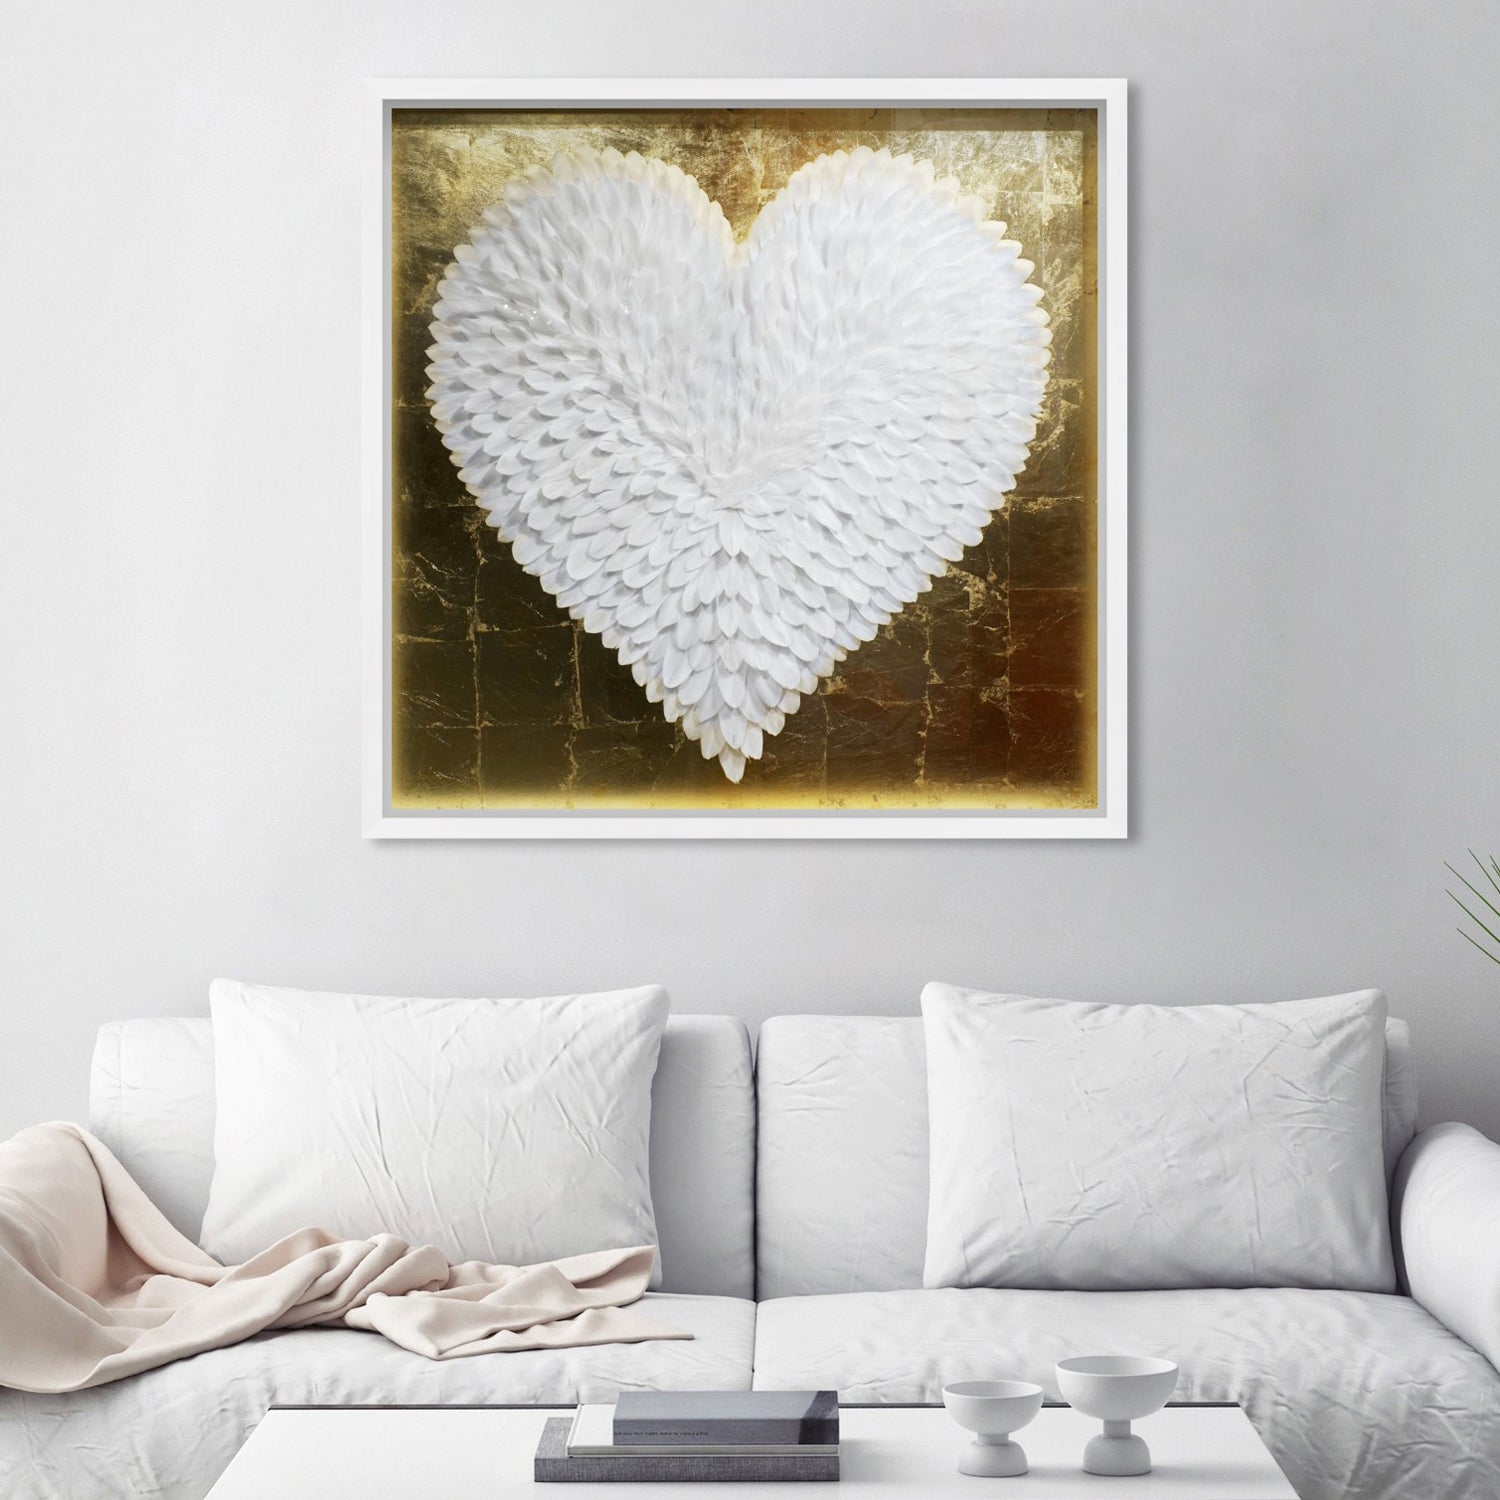 Oliver Gal Feather Heart White and Gold Framed Wall Art – Paynes Gray